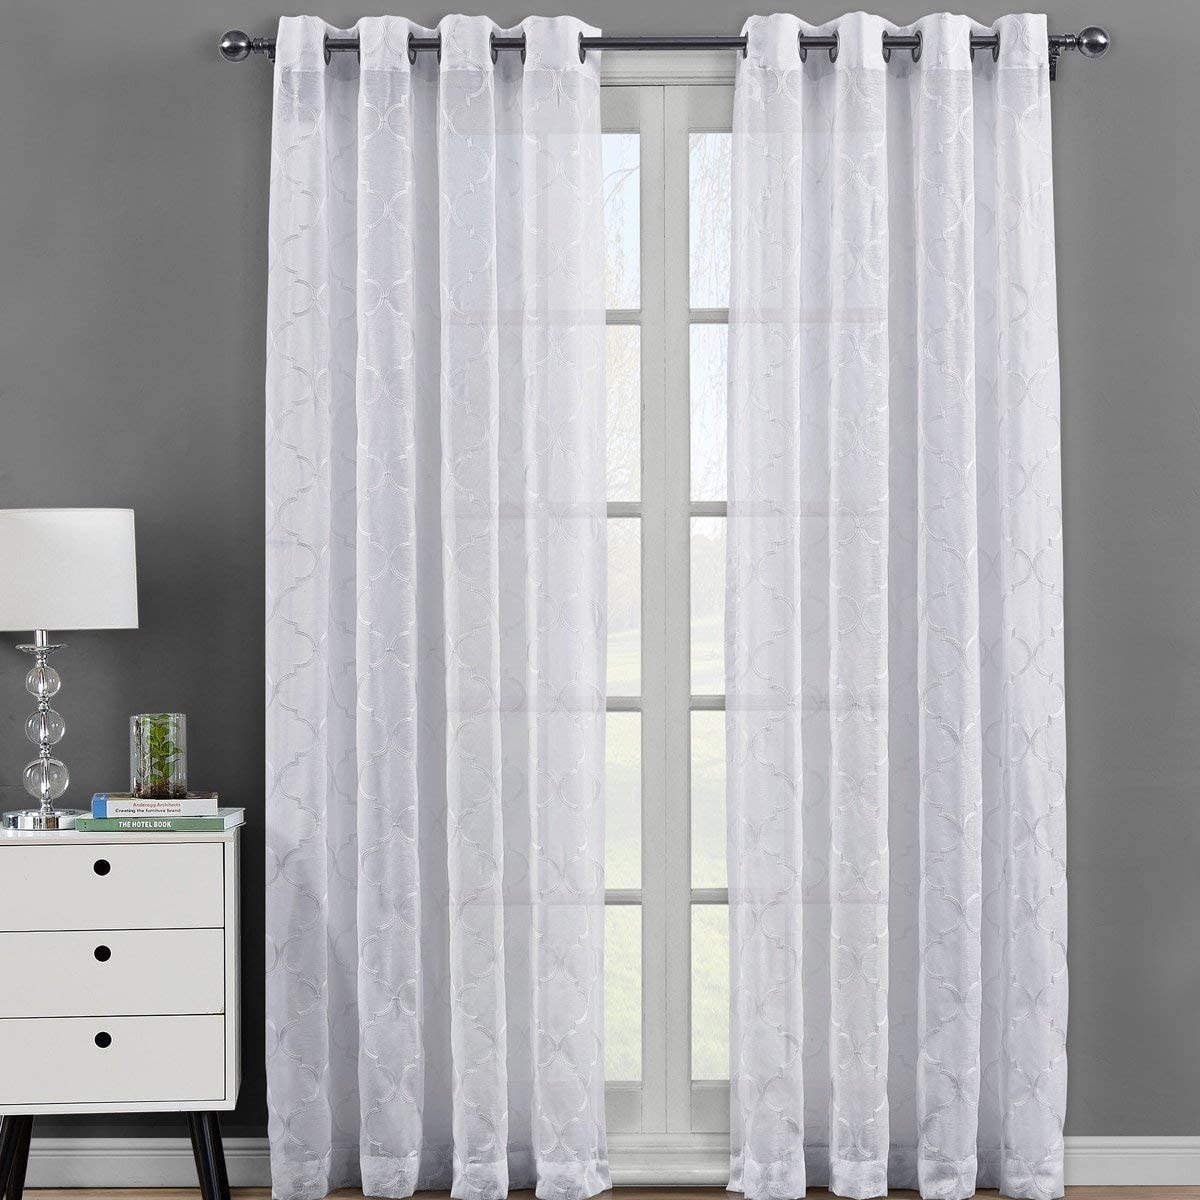 Royal Bedding Miller White Sheer Panels, Top Grommet Embroidered Sheer Curtain Panels, Set of 2, 54Wx108L inches Each